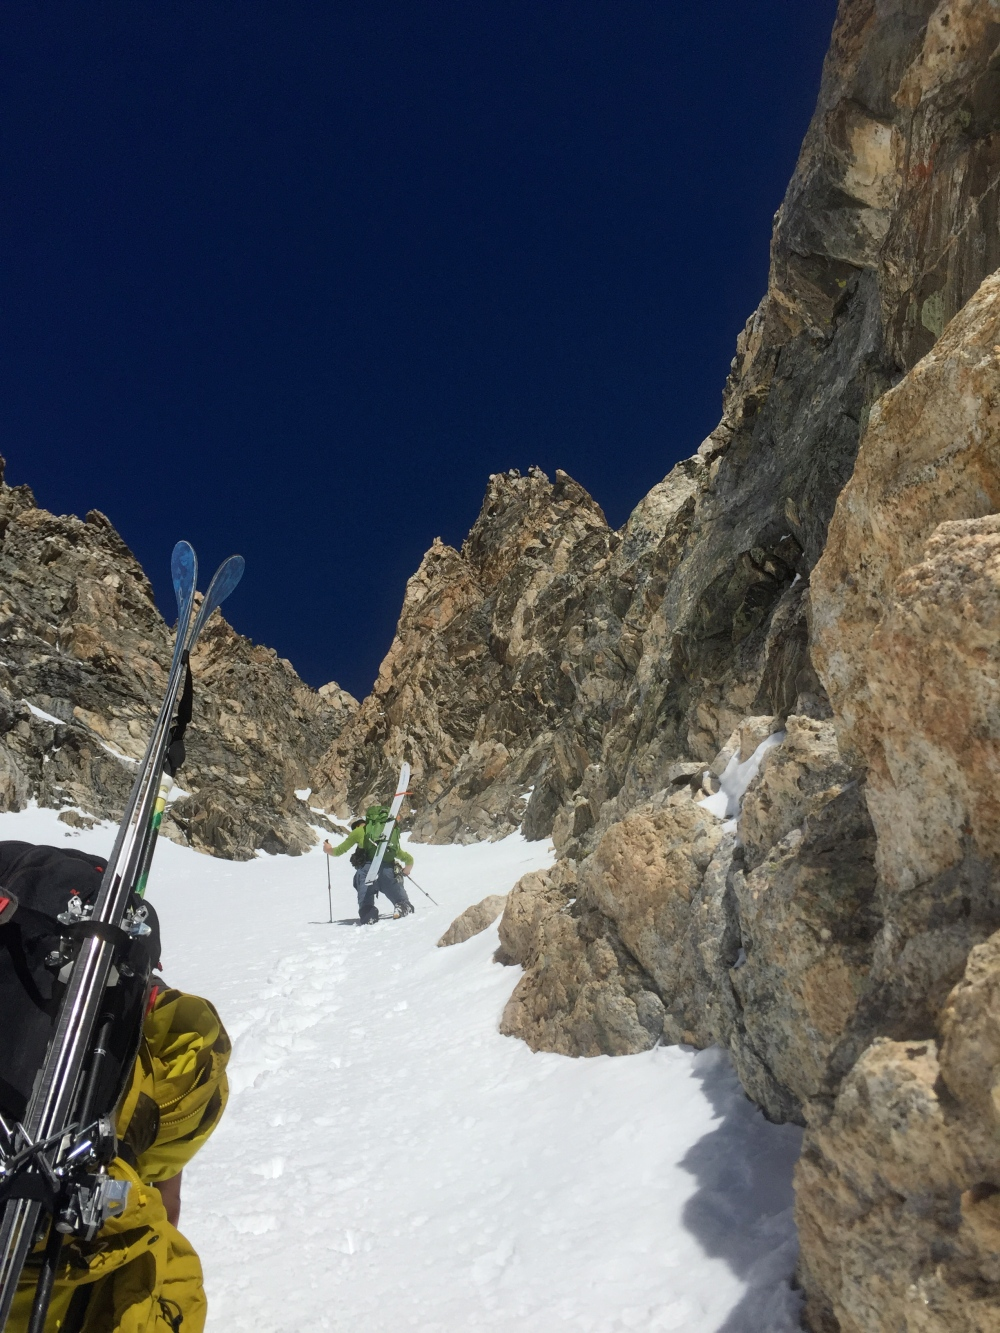 Heading up the Couloir